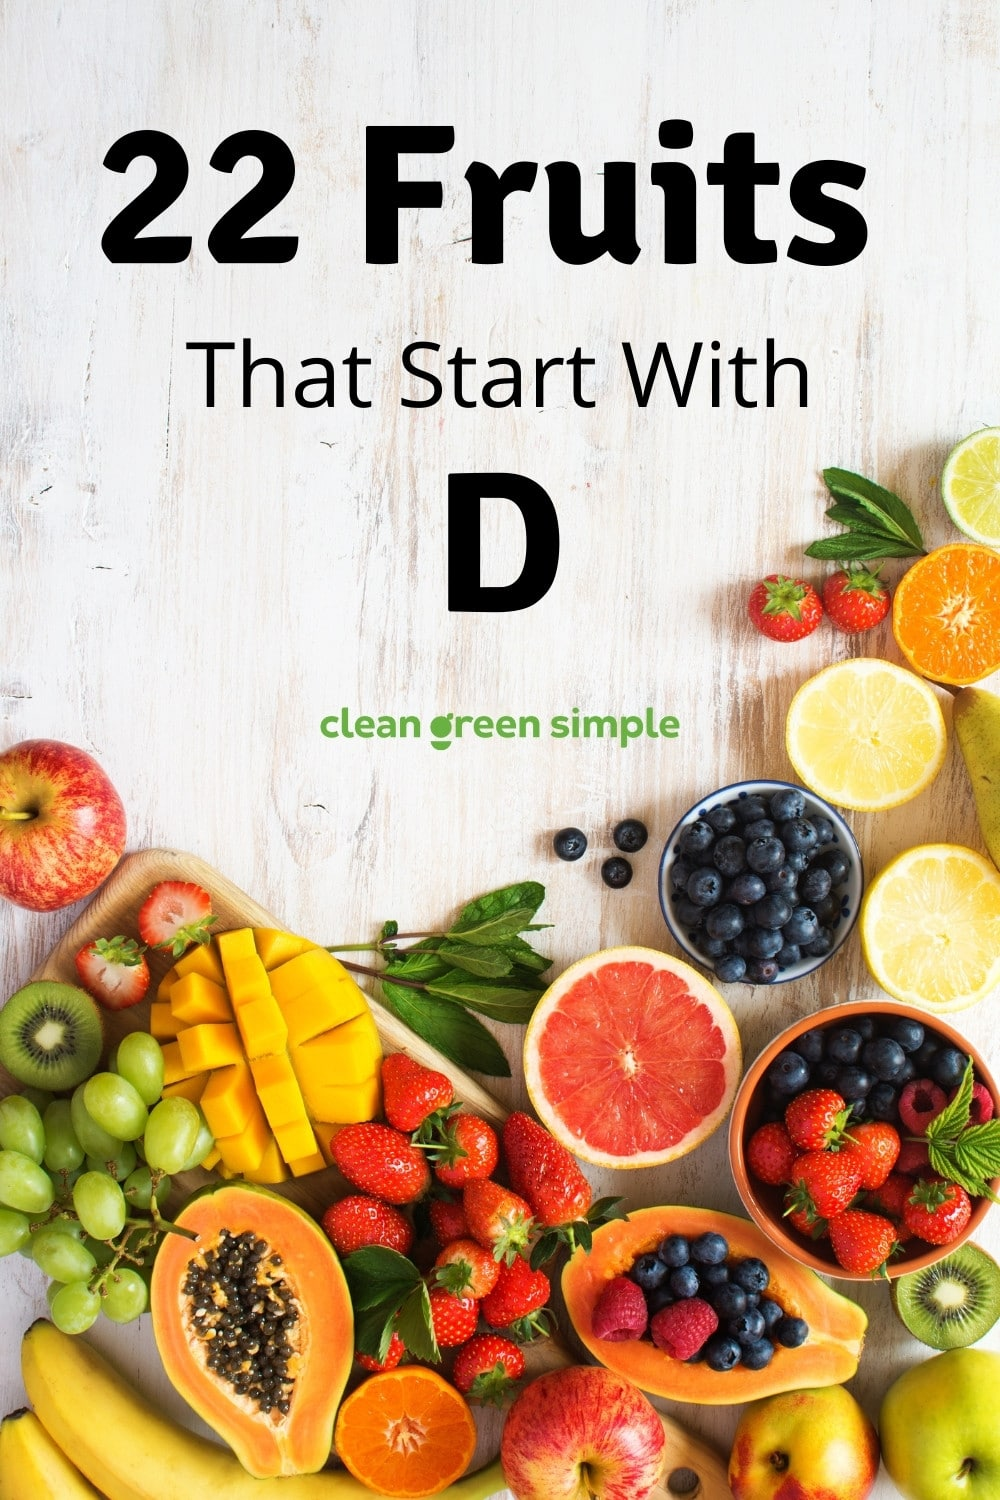 Fruits that start with D